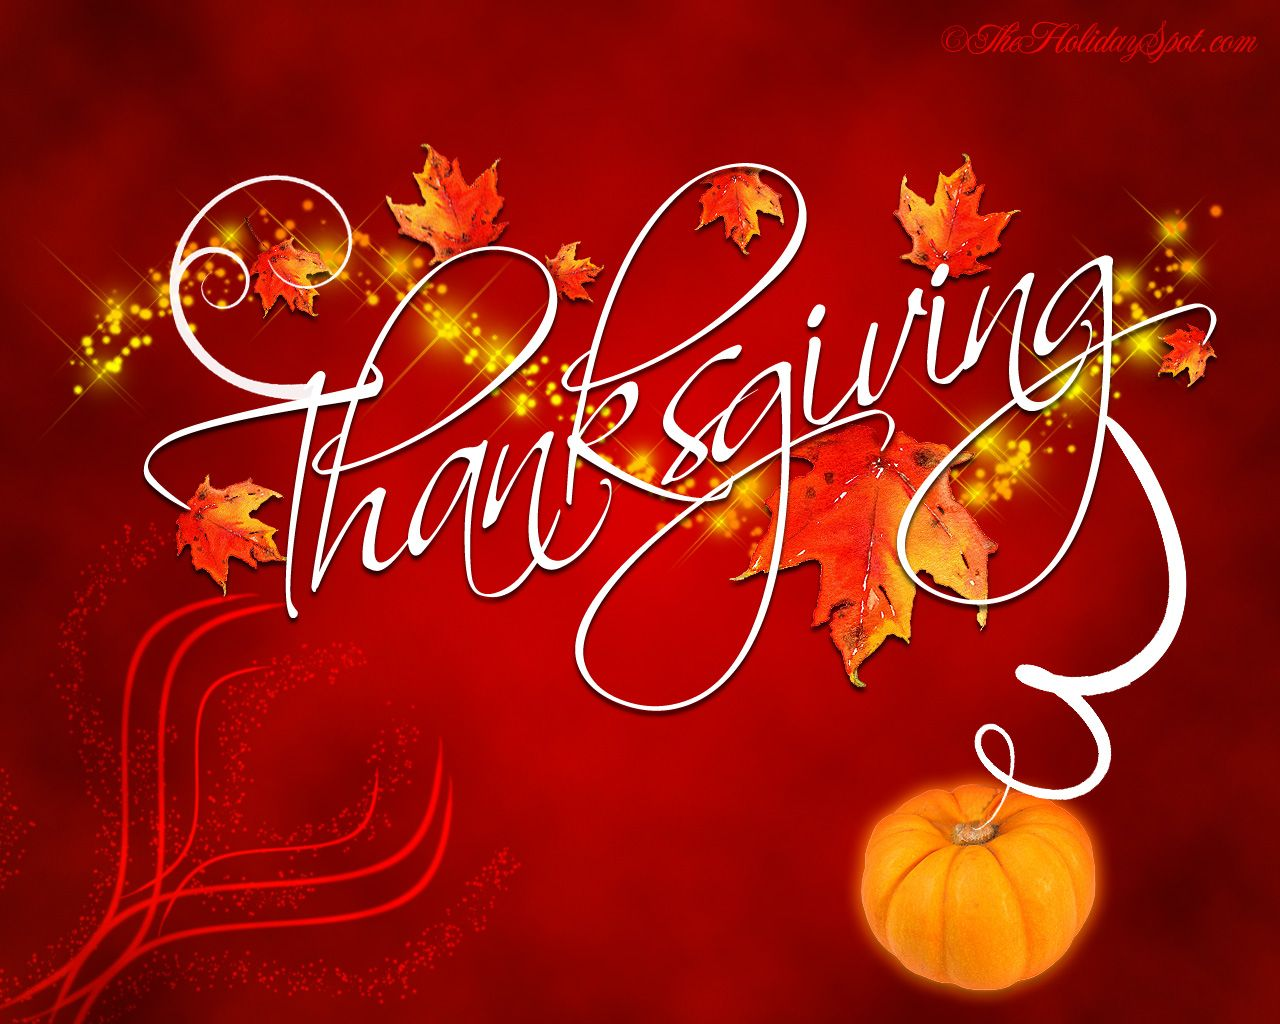 25 Happy Thanksgiving Day 2012 Hd Wallpapers Thanksgiving Pictures Happy Thanksgiving Wallpaper Free Thanksgiving Wallpaper